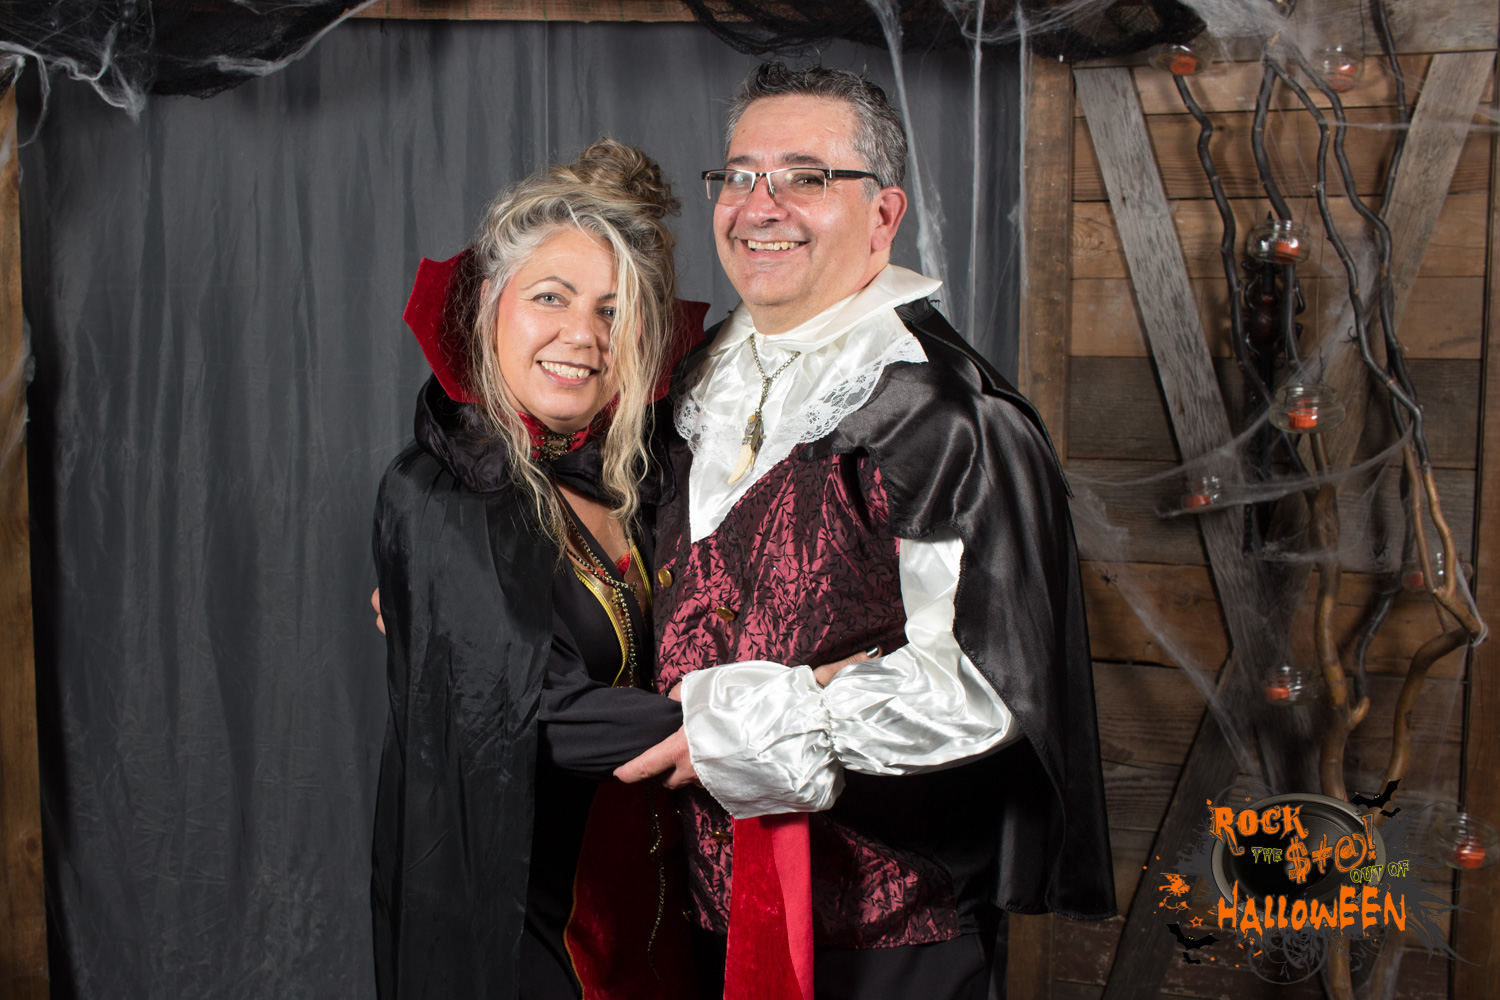 Halloween-PhotoBooth-011-6677